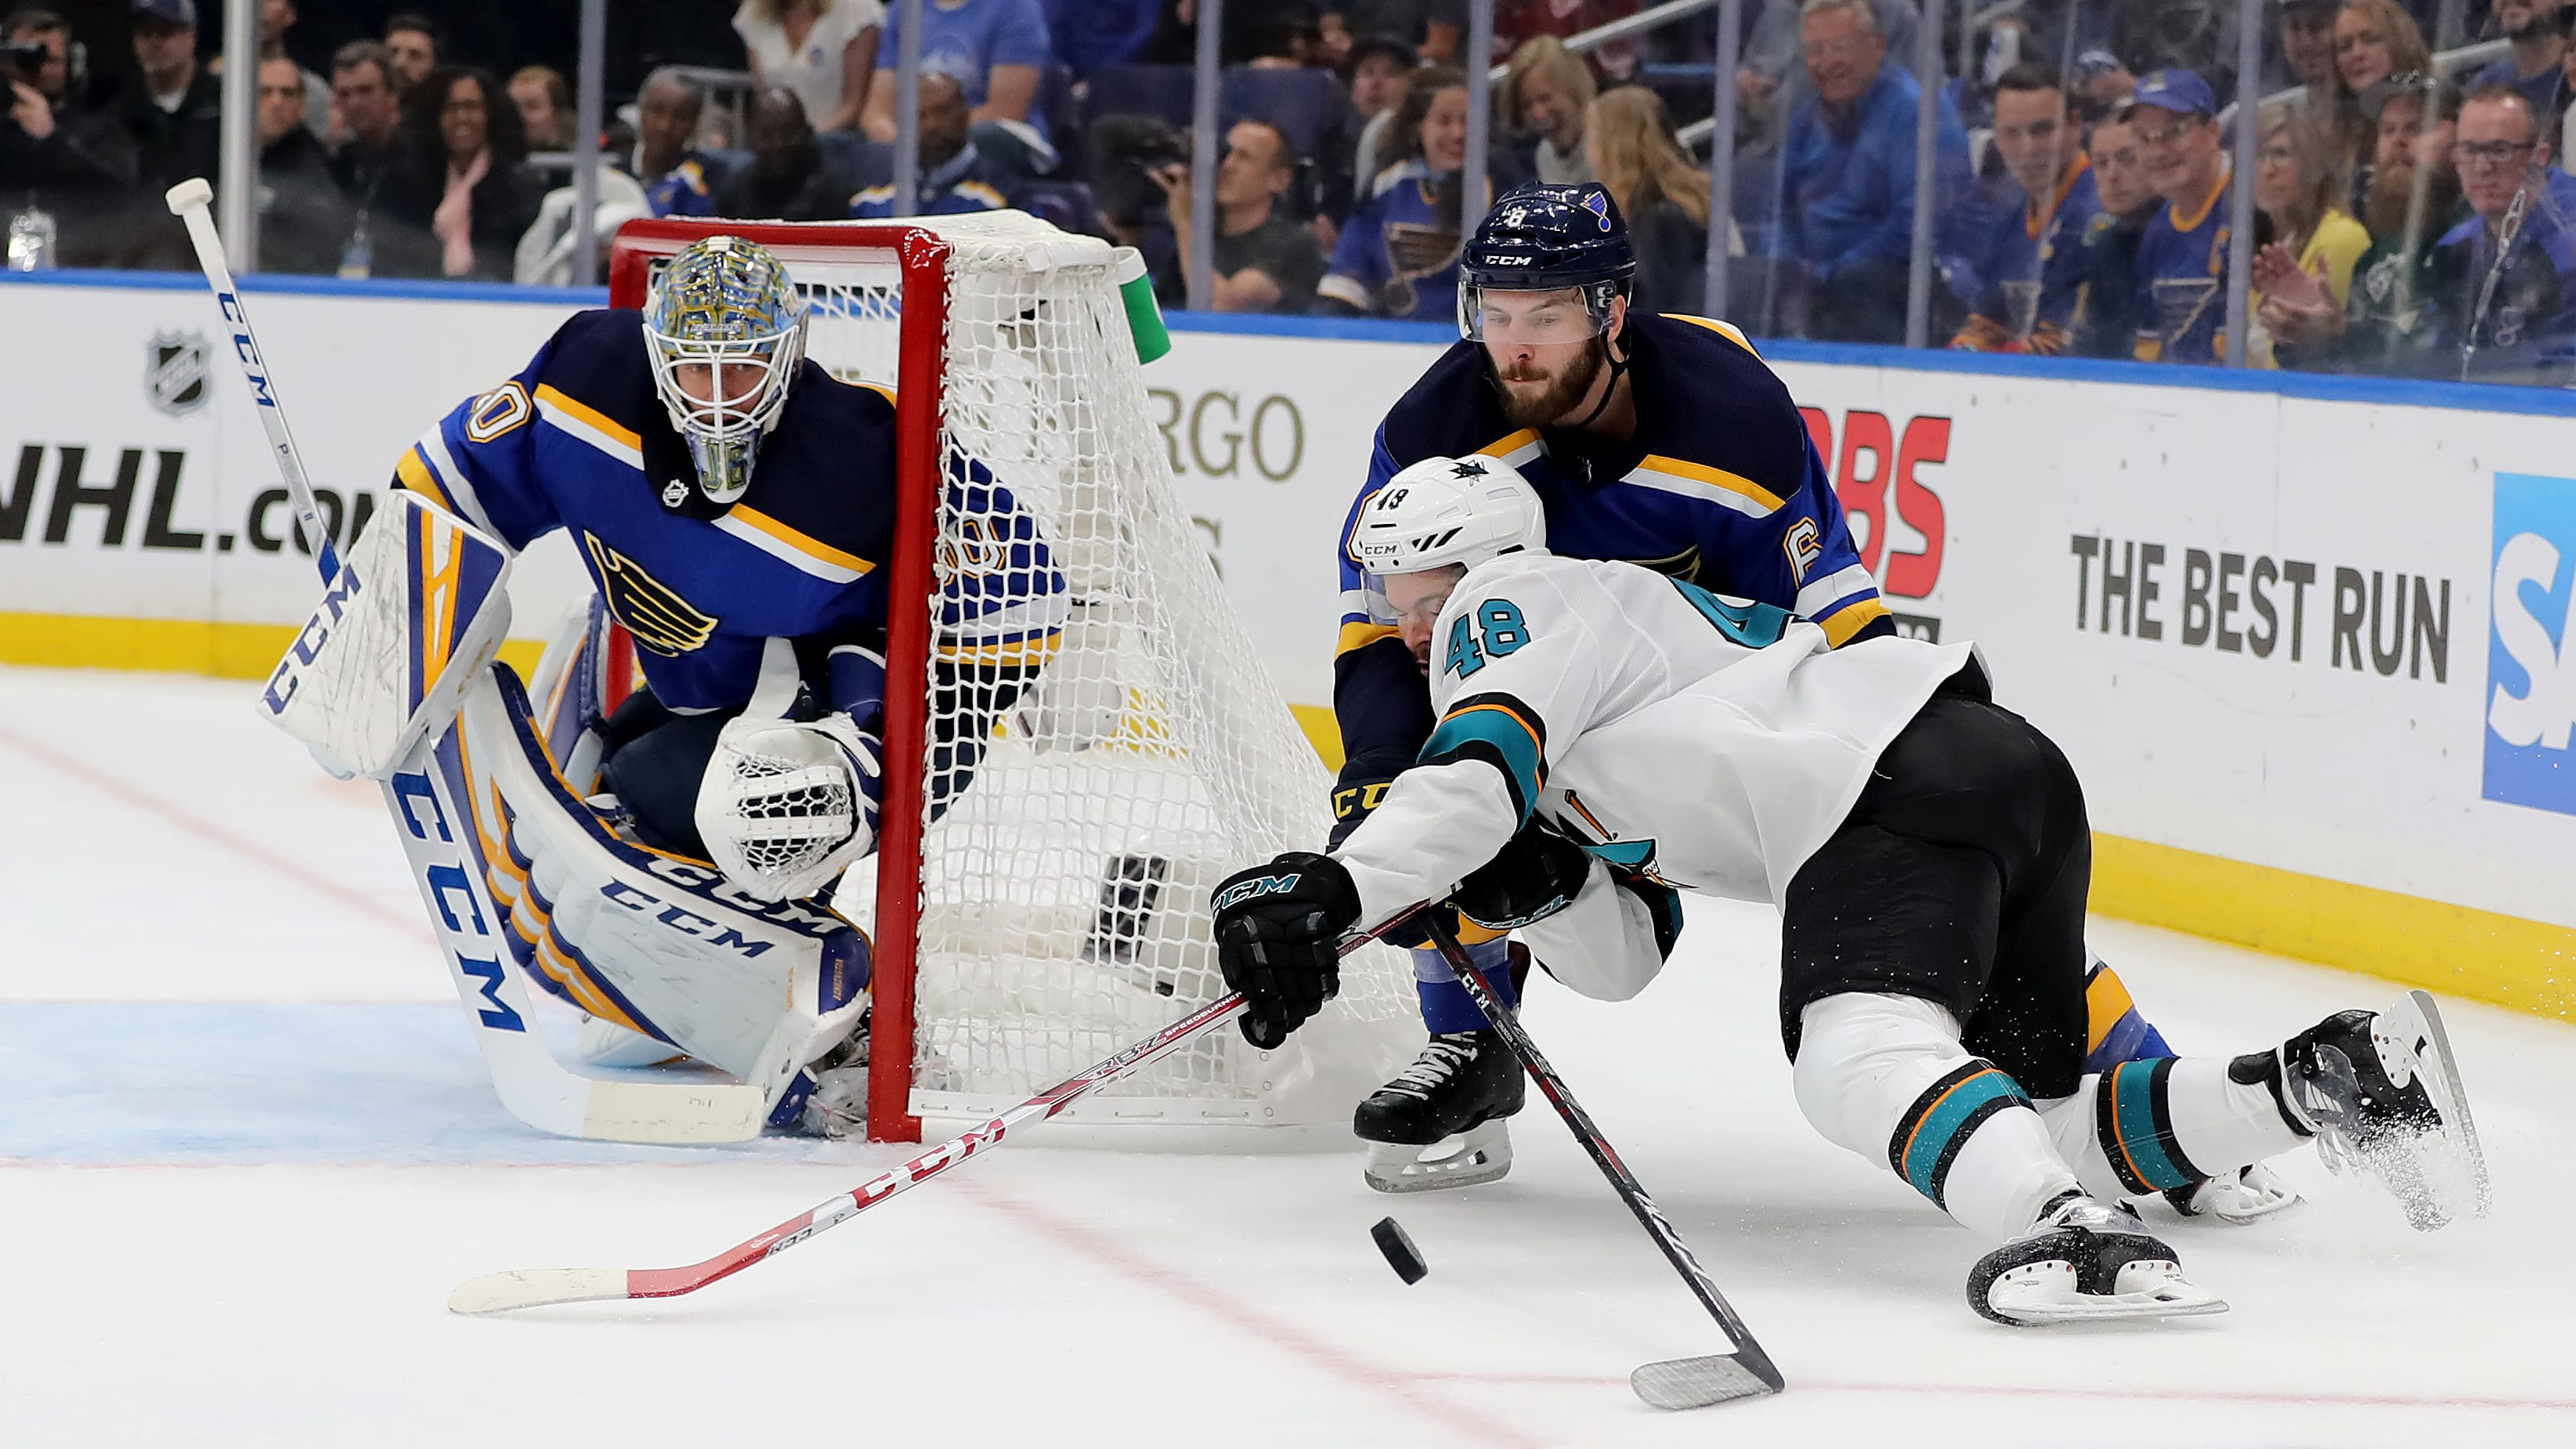 ST LOUIS, MISSOURI - MAY 17: Tomas Hertl #48 of the San Jose Sharks collides with Joel Edmundson #6 of the St. Louis Blues during the first period in Game Four of the Western Conference Finals during the 2019 NHL Stanley Cup Playoffs at Enterprise Center on May 17, 2019 in St Louis, Missouri. (Photo by Elsa/Getty Images)